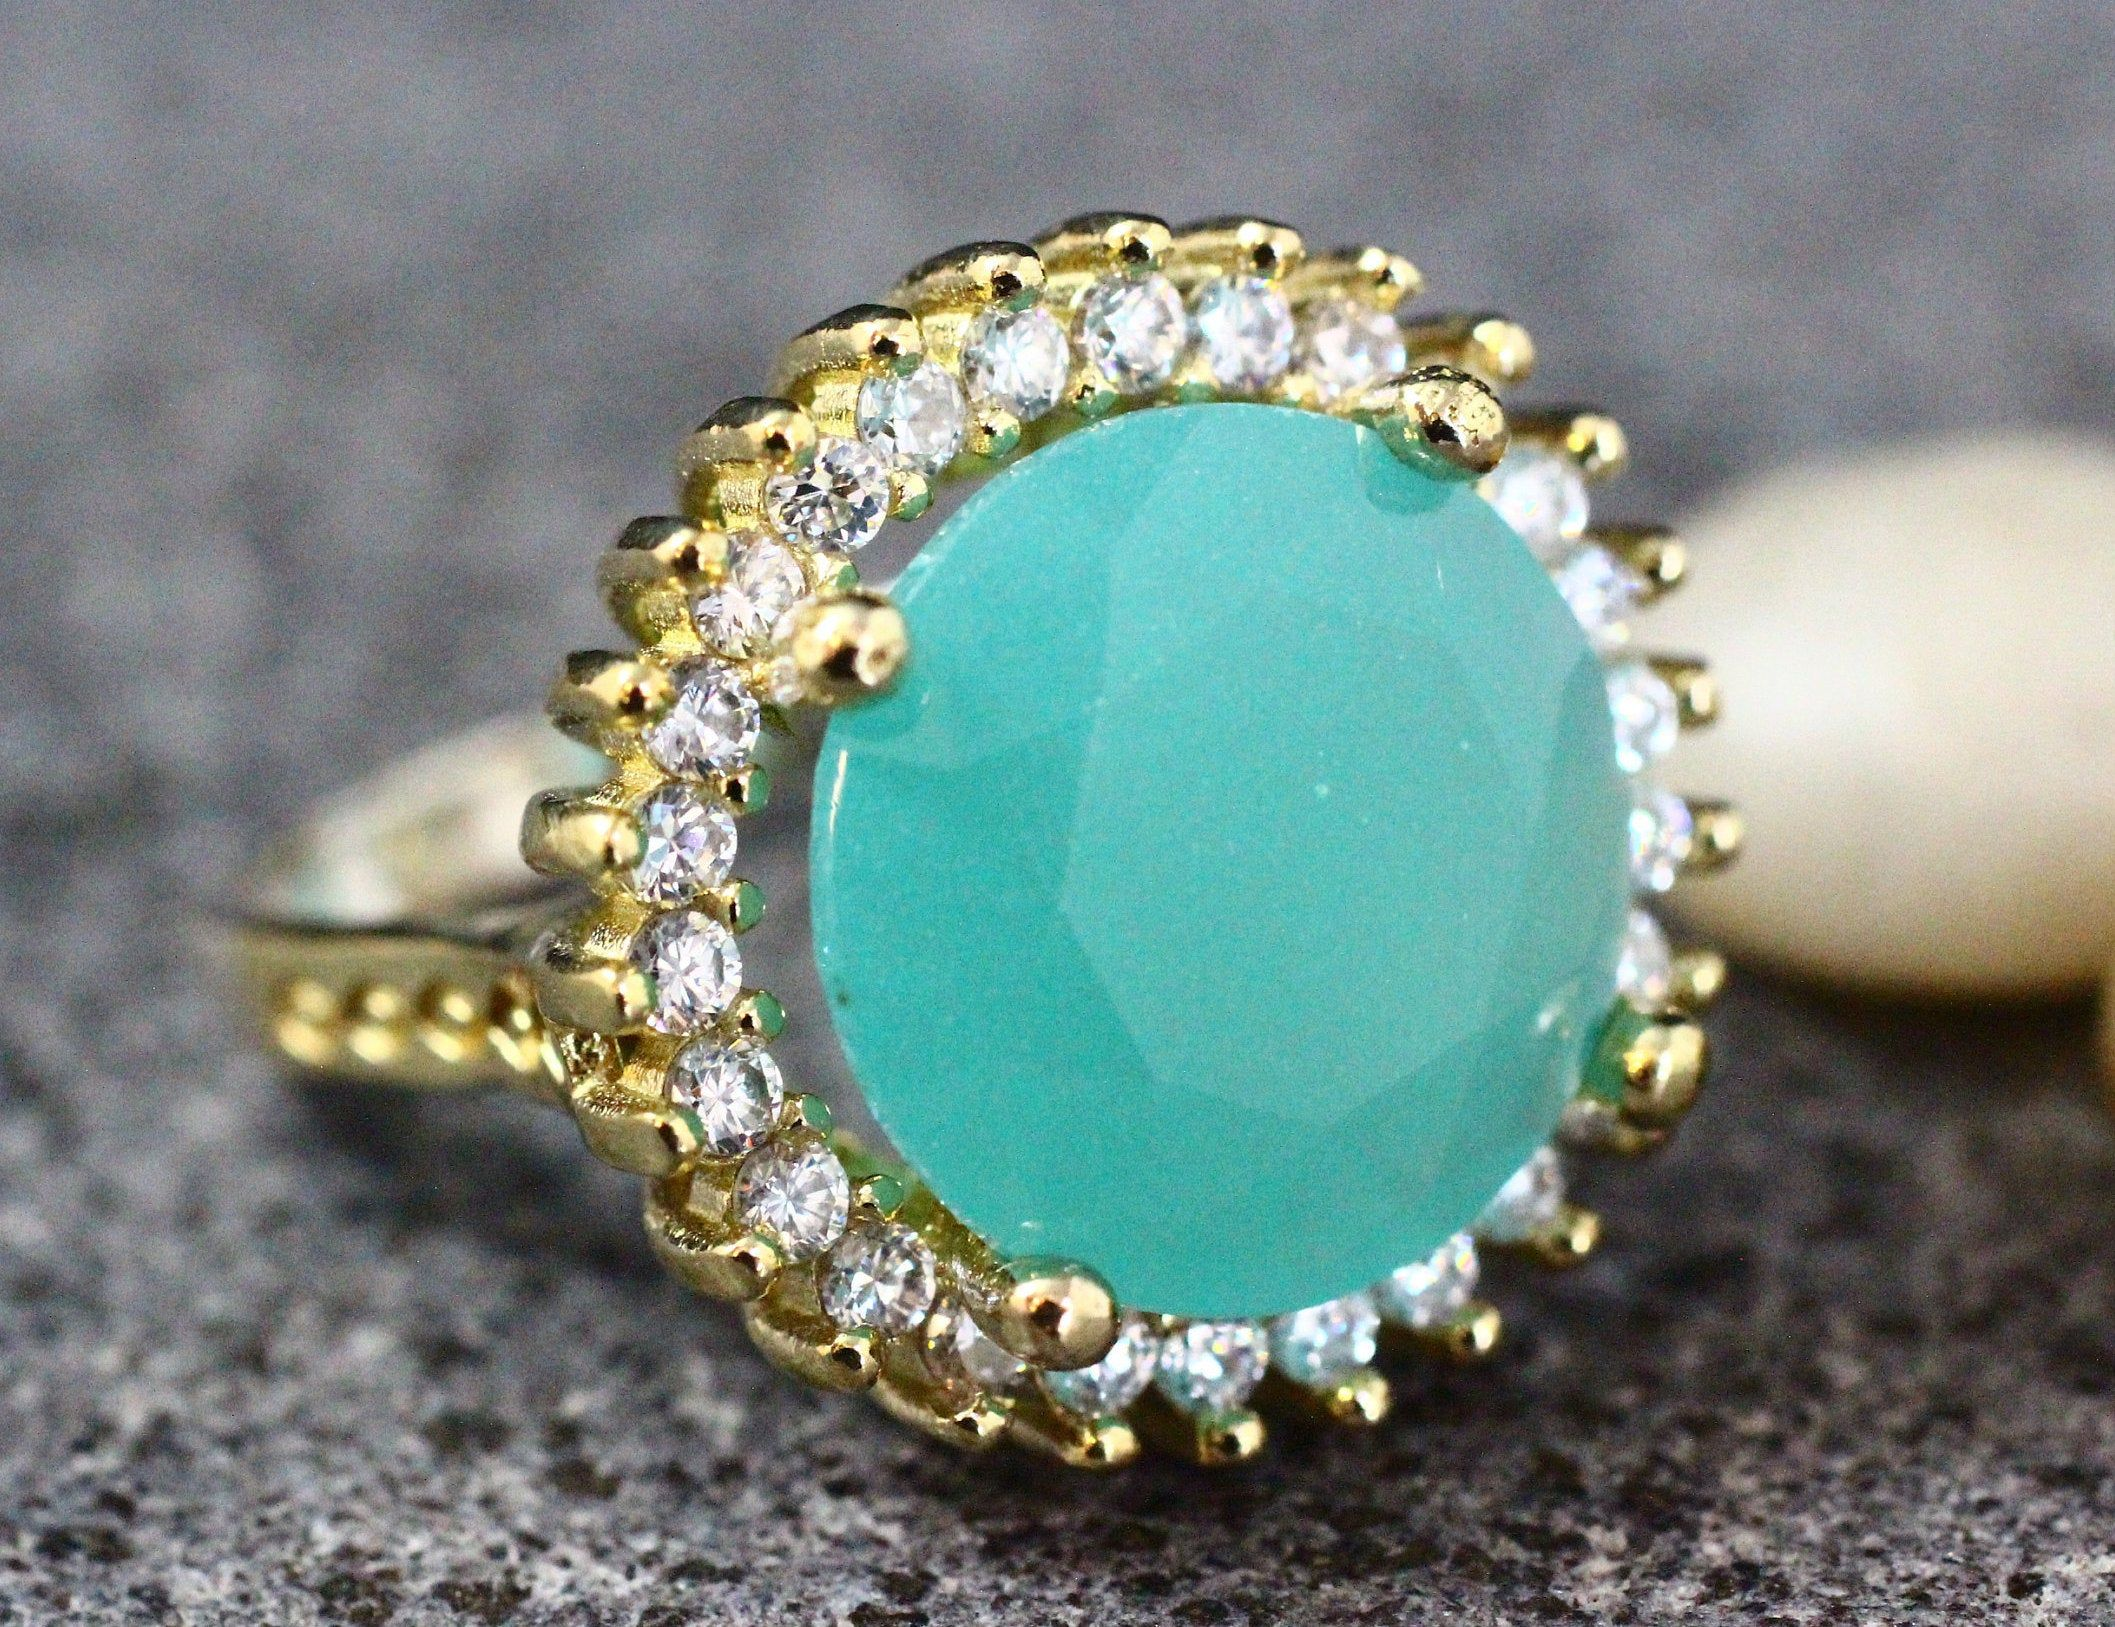 Silver 925 Ring Silver Ring Ottoman Style Set Sterling Silver 925 Aquamarine Handmade Set Ottoman Style Ring Gift for her Earring